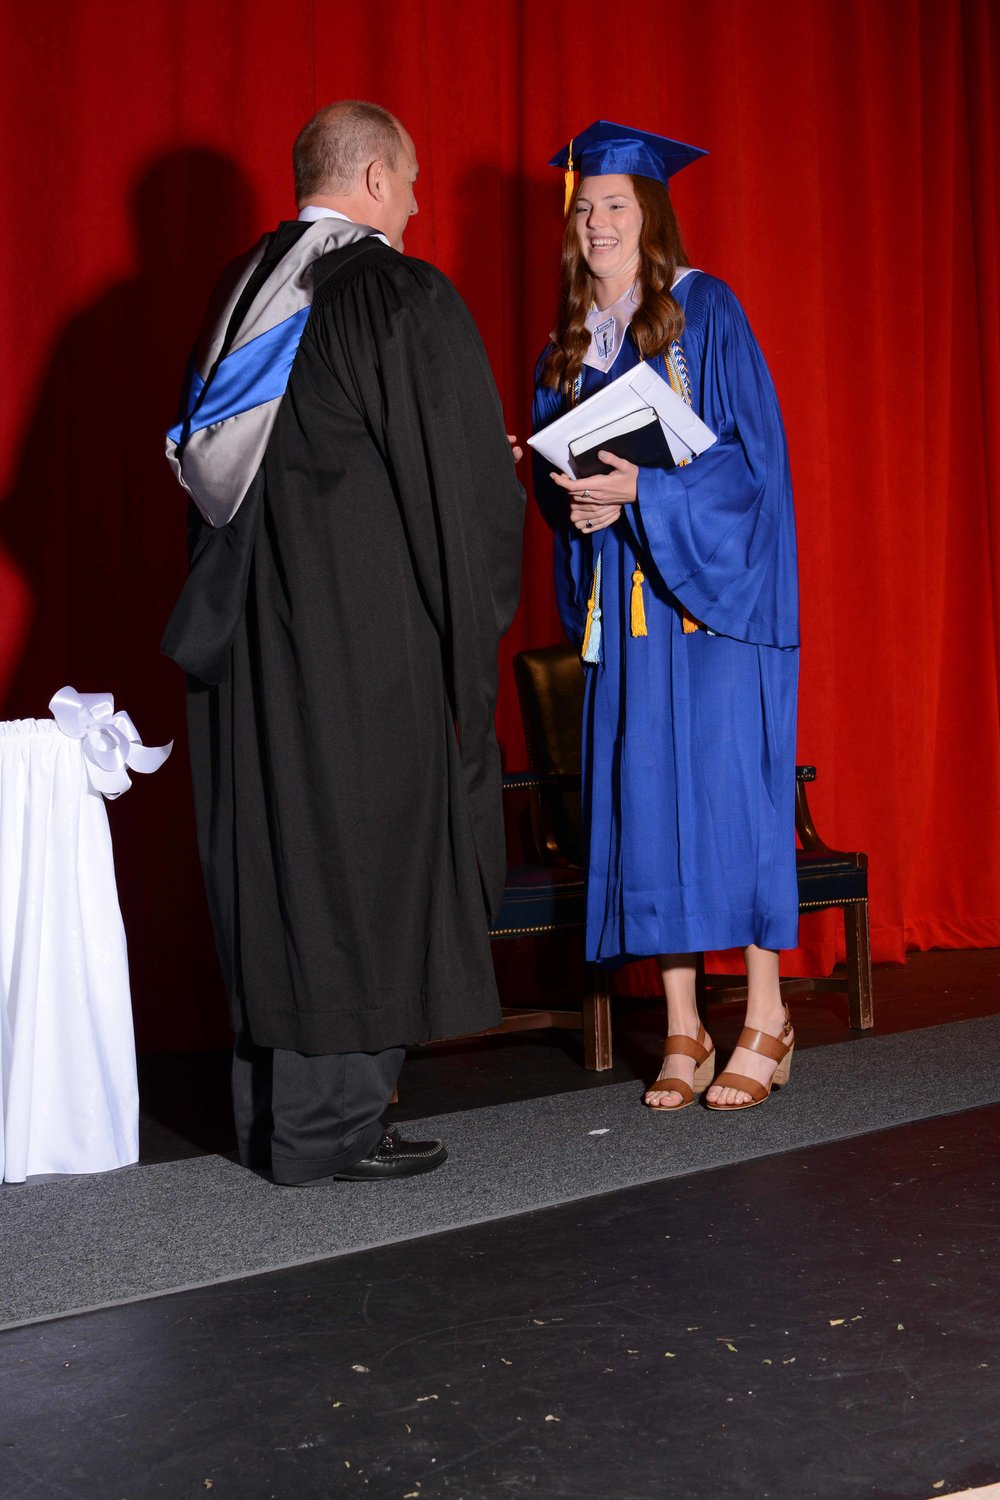 May15 HardingGraduation104.jpg